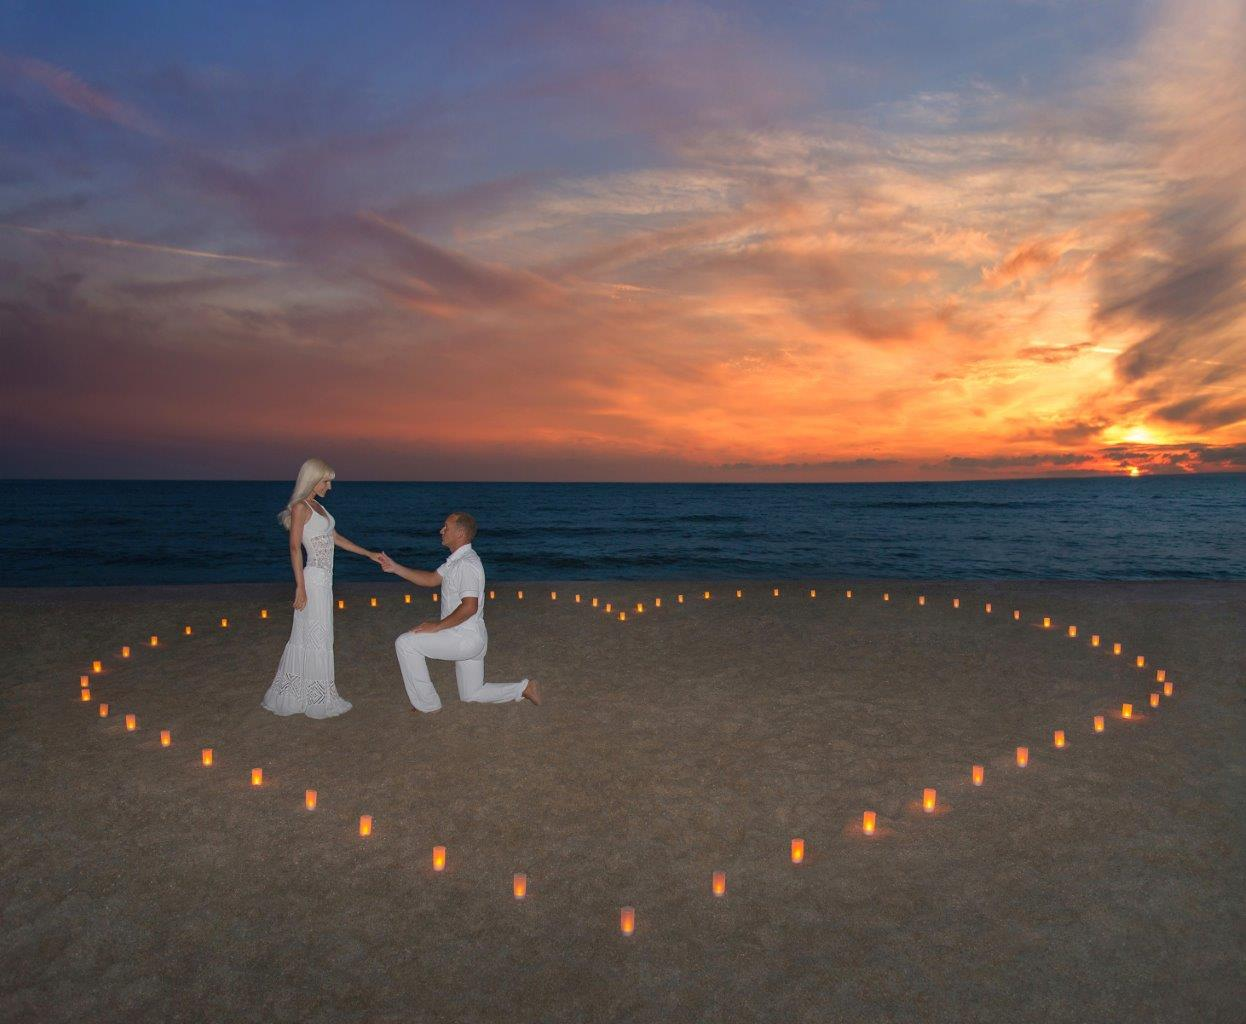 Man proposing to woman at sunset with candles arranged in the shape of a heart